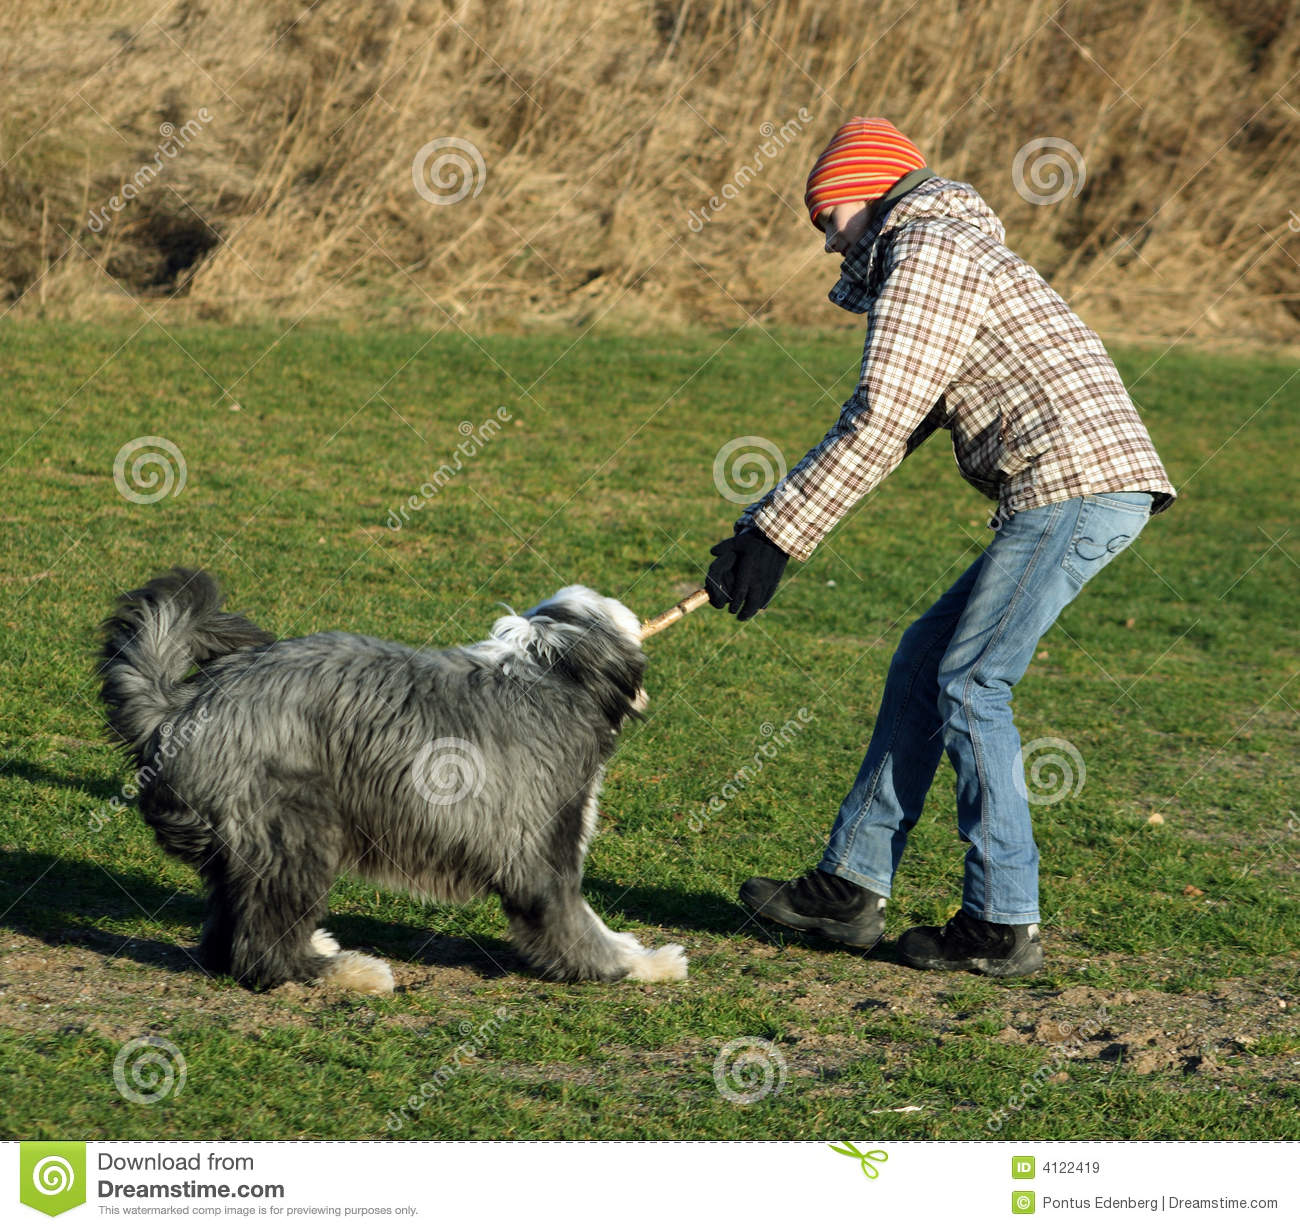 Dog and girl fighting over a stick